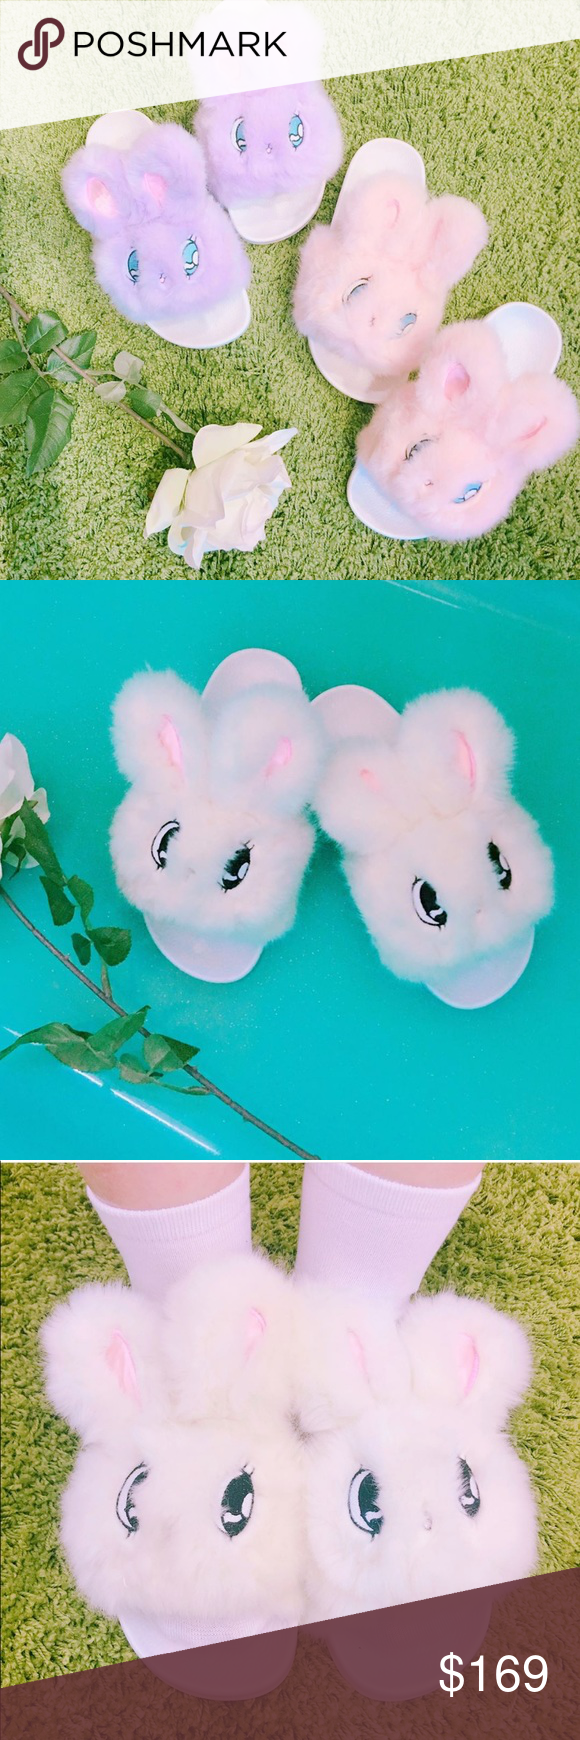 b952c3db29a9 NWOT Rare Lazy Oaf Bunny Slippers Esther Loves You Auth. Sold out. New  without box or tag. WC X Esther loves you. Very cute slipper.